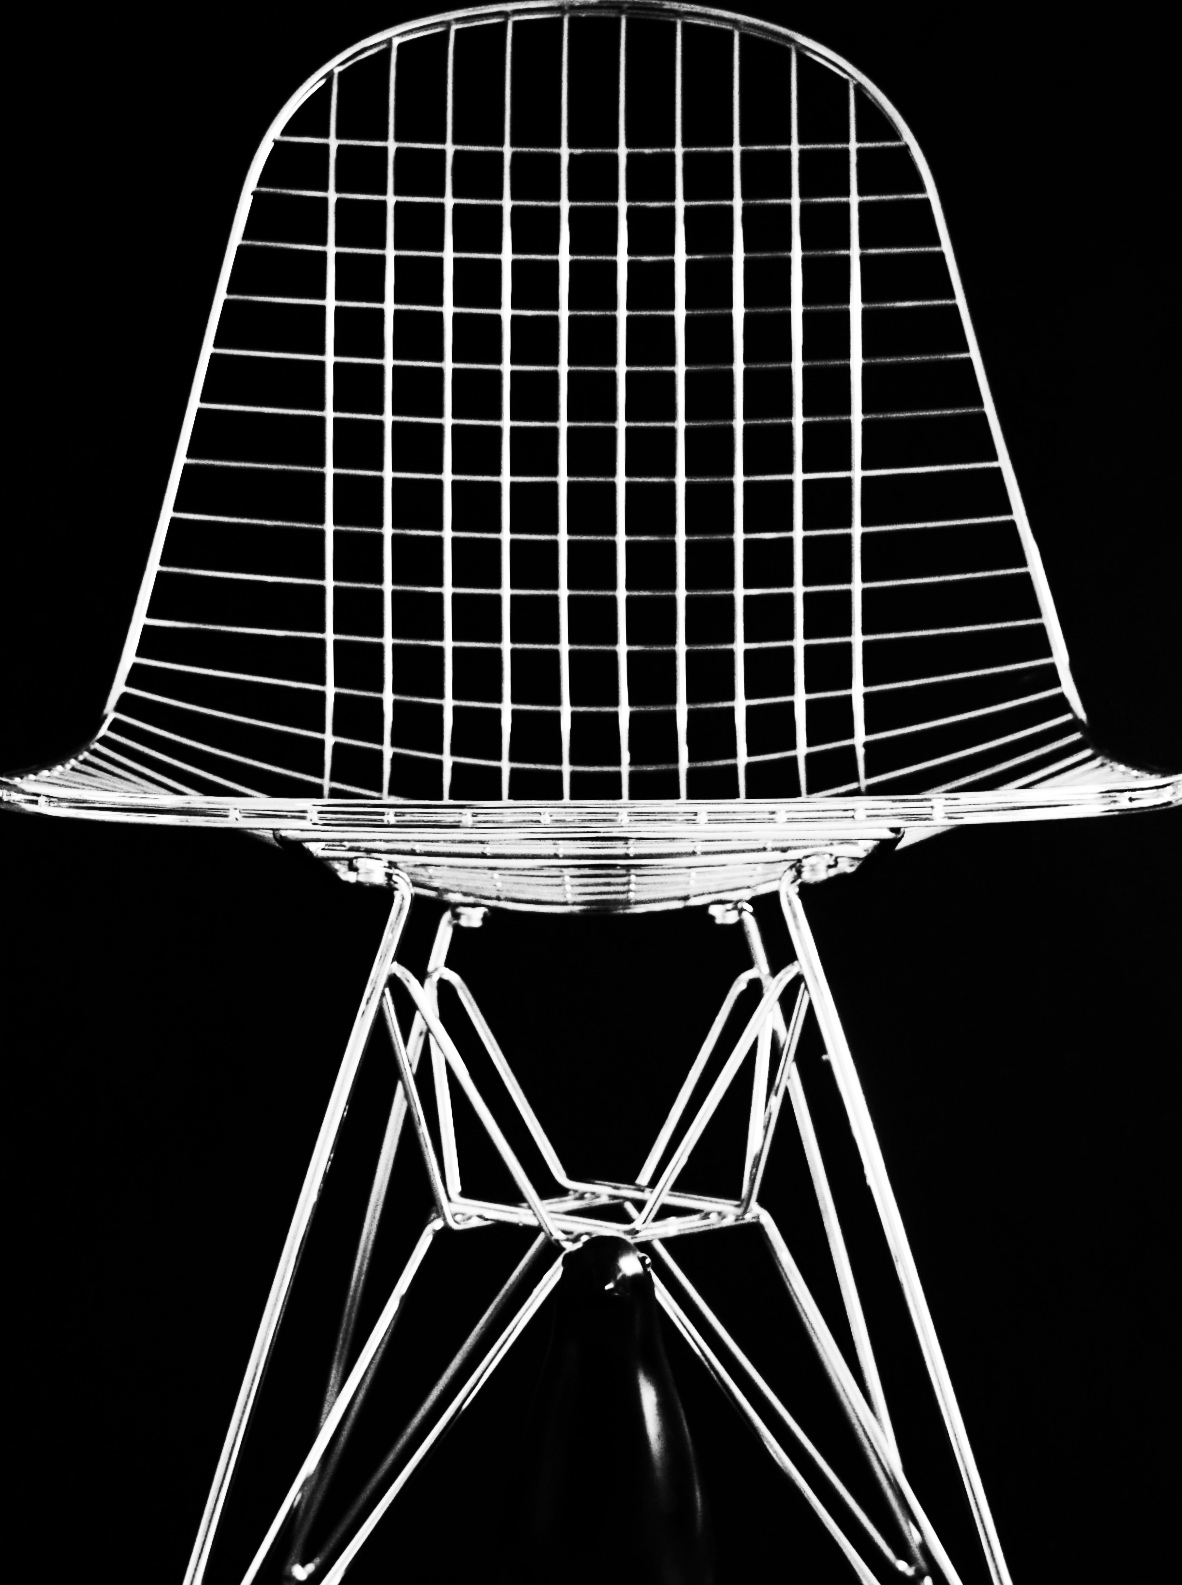 Verlosung zum 4. Advent – win a Wire Chair DKR von Vitra by eat blog love